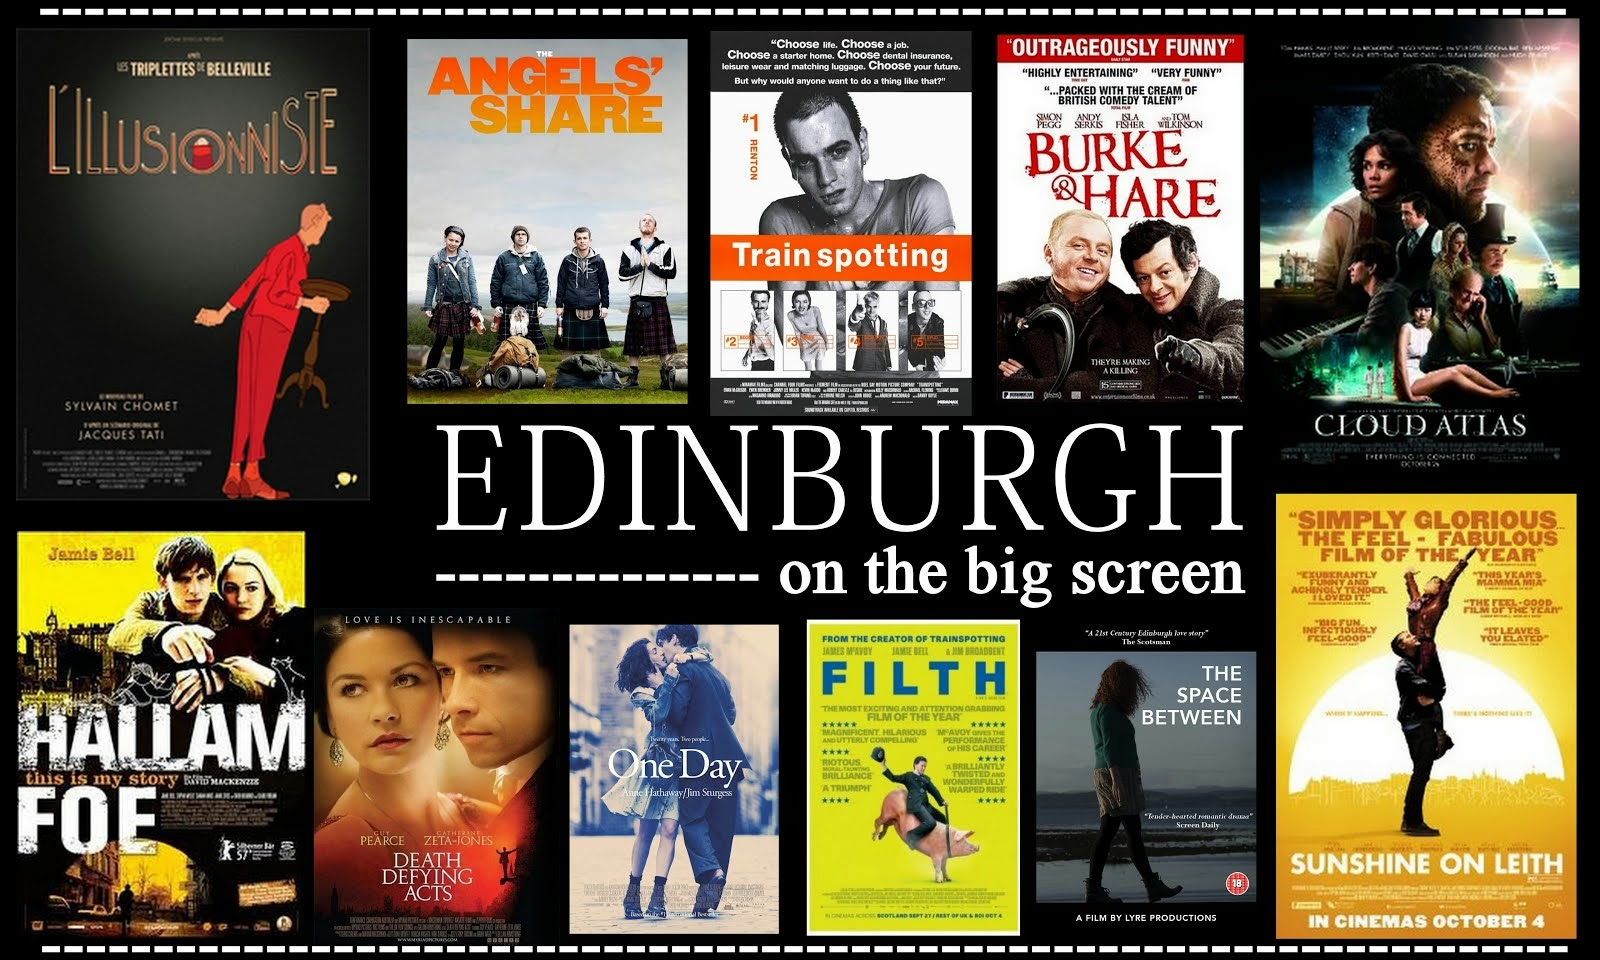 Edinburgh on the Big Screen